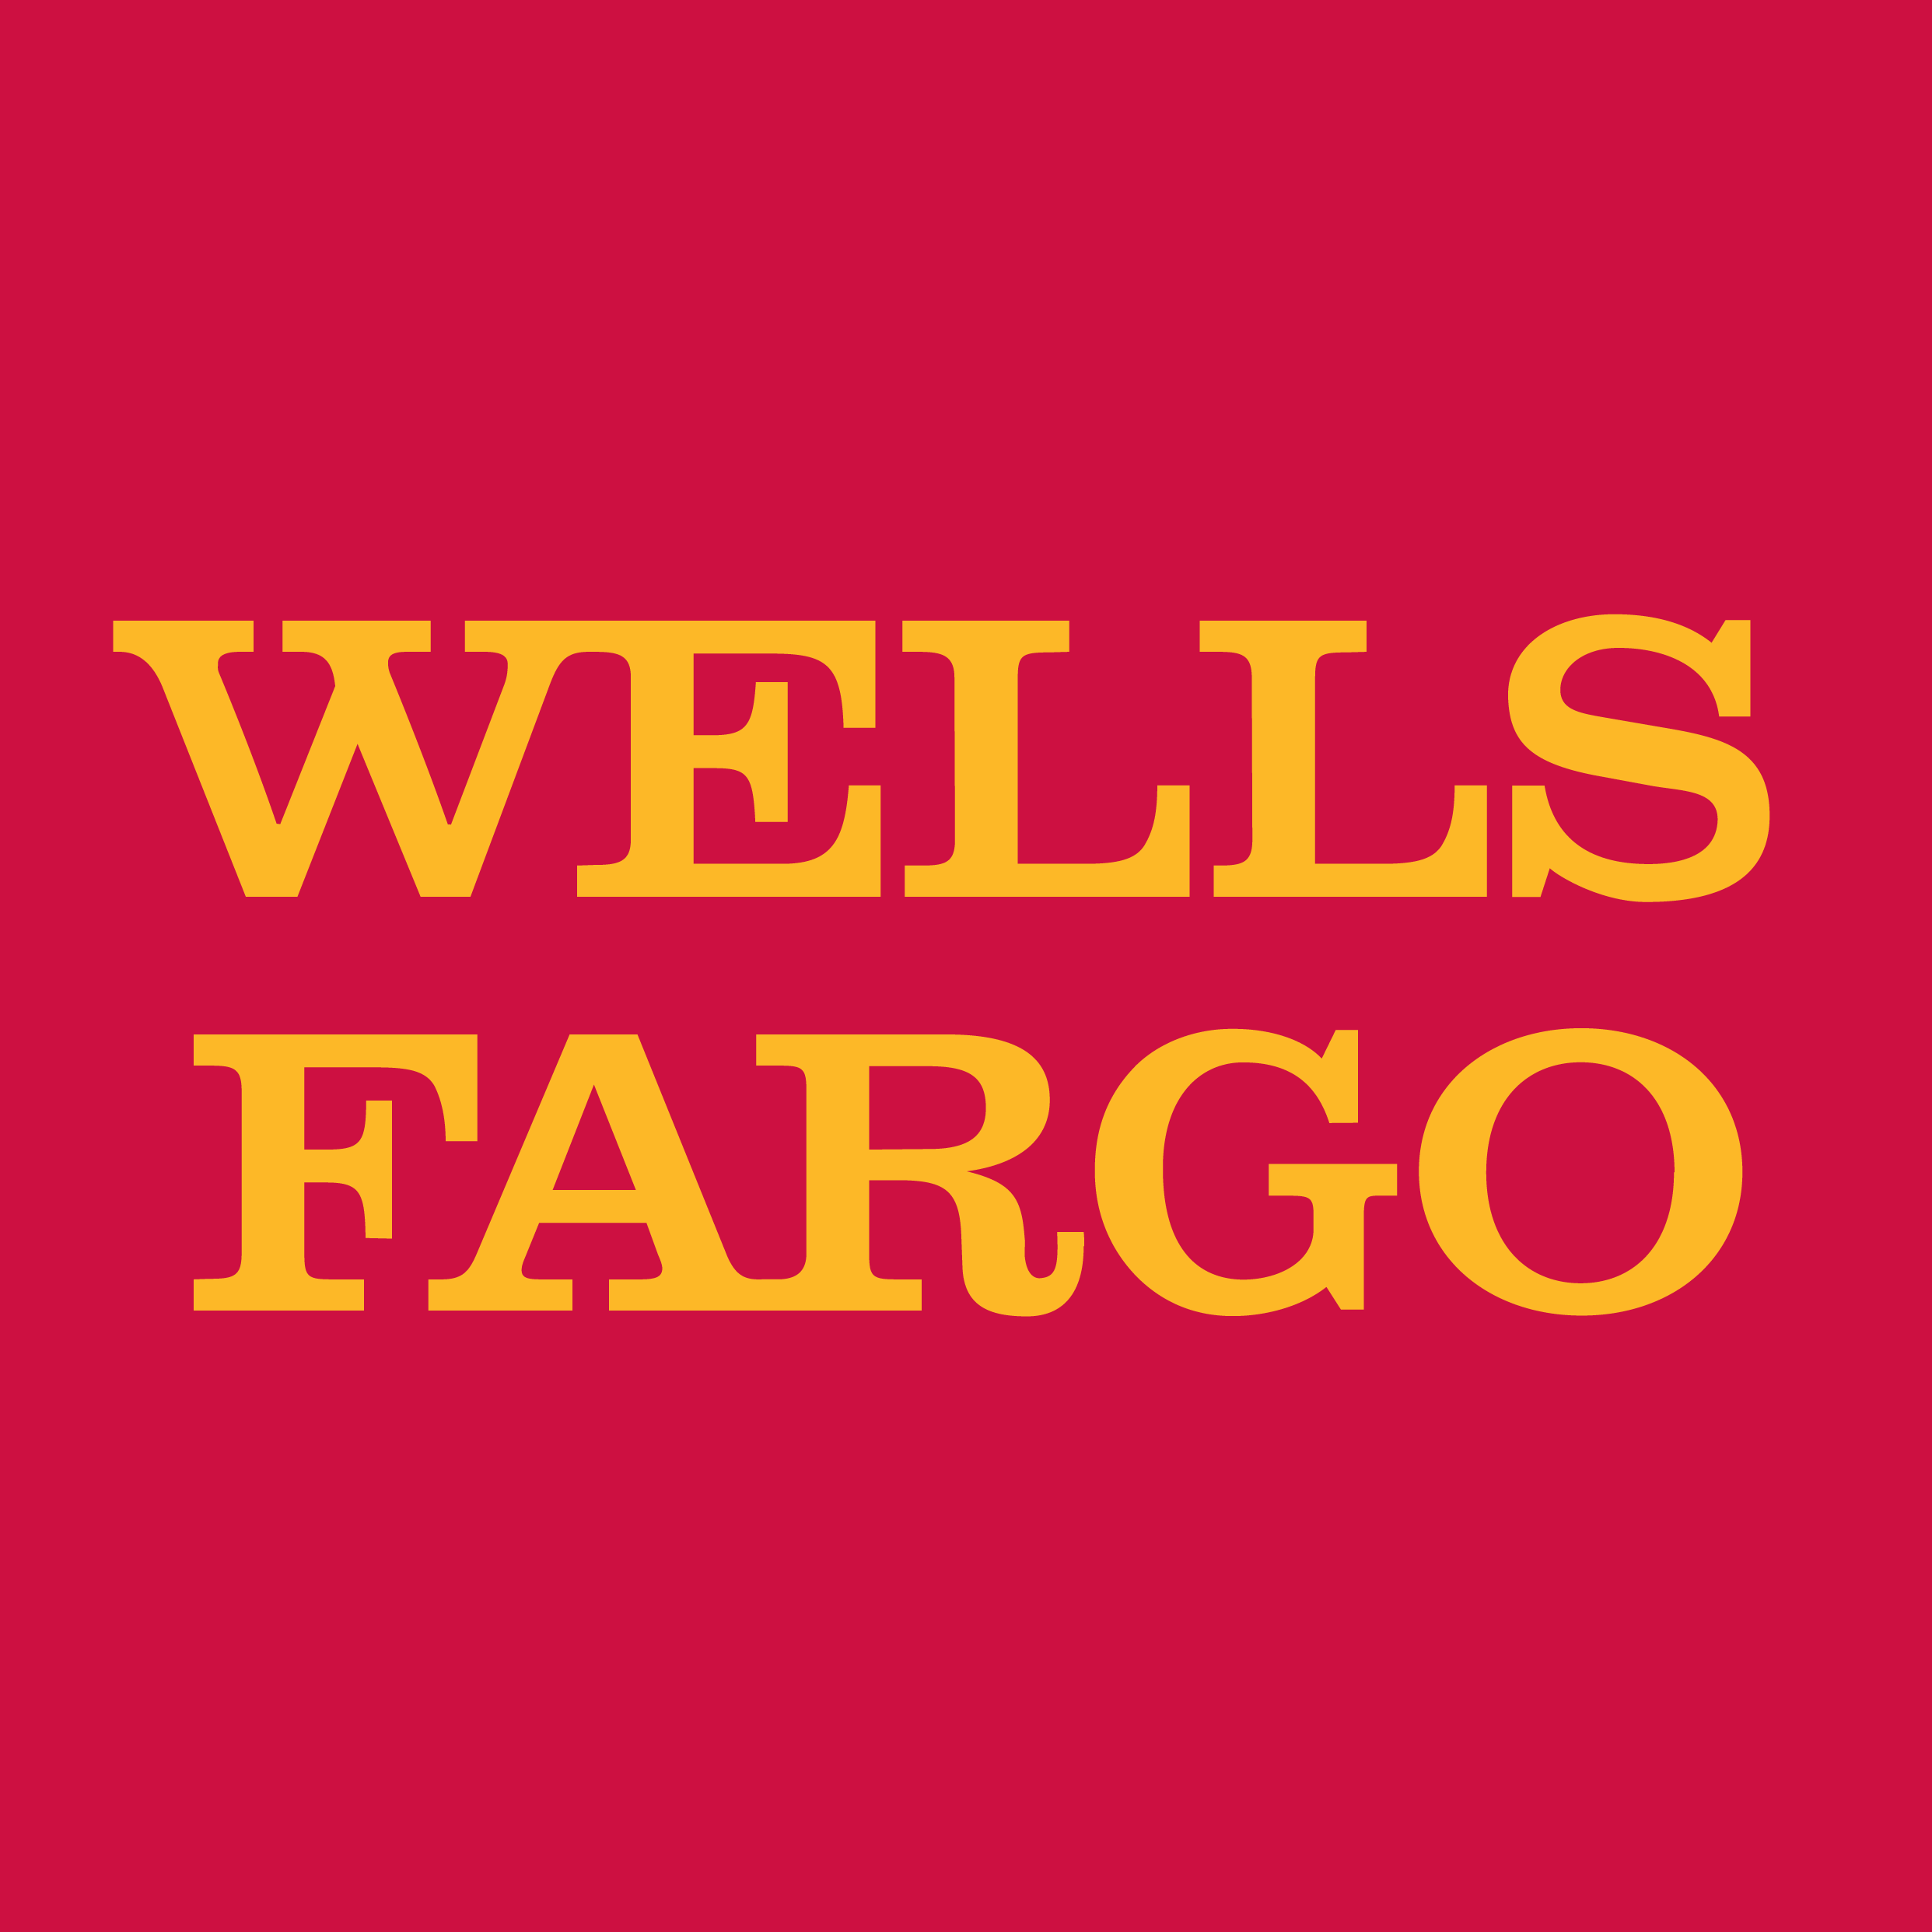 Well Fargo logo